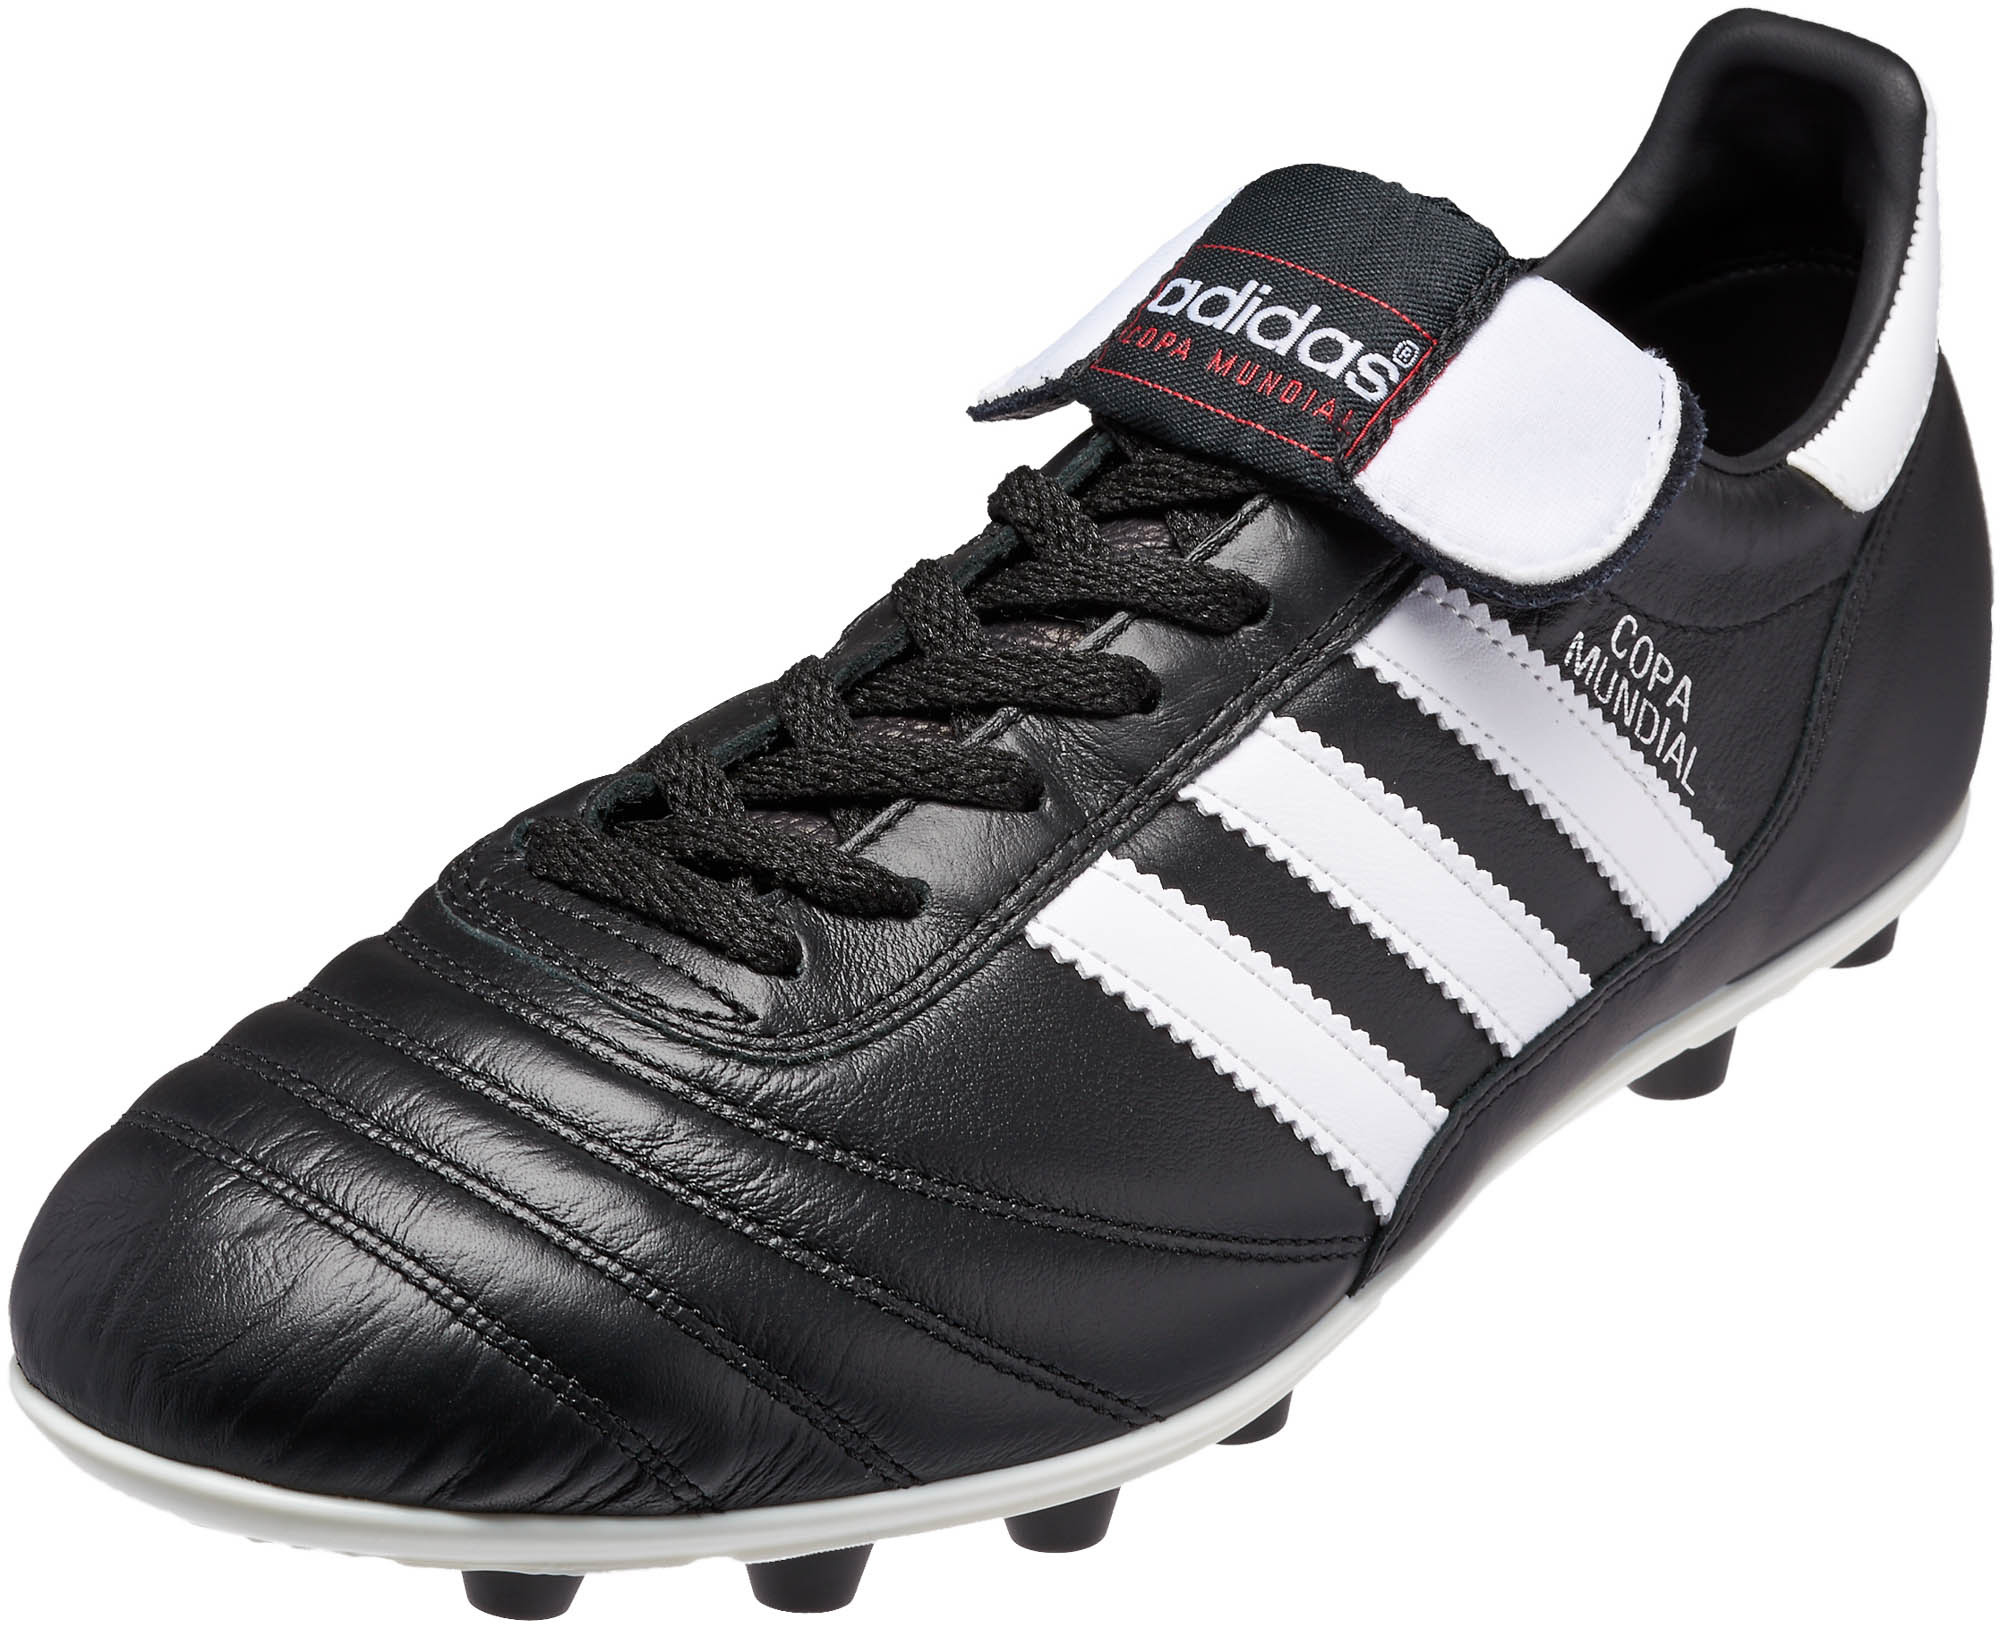 bb29b899ff8 adidas Copa Mundial - Black with White - Soccer Master